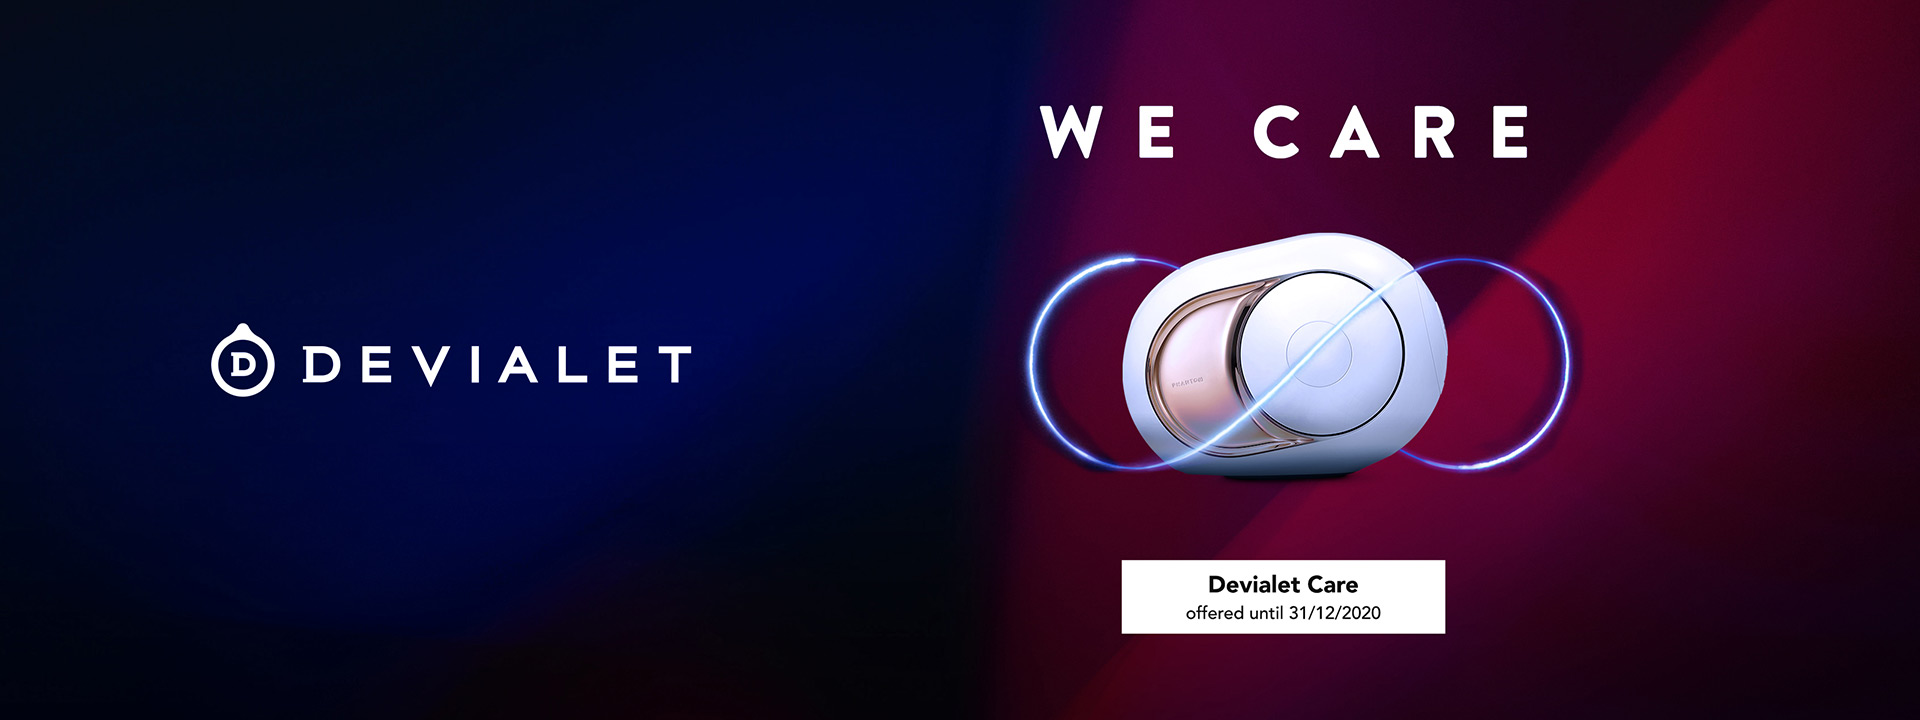 Devialet End-Of-2020 Extended Care Offer | Unilet Sound & Vision